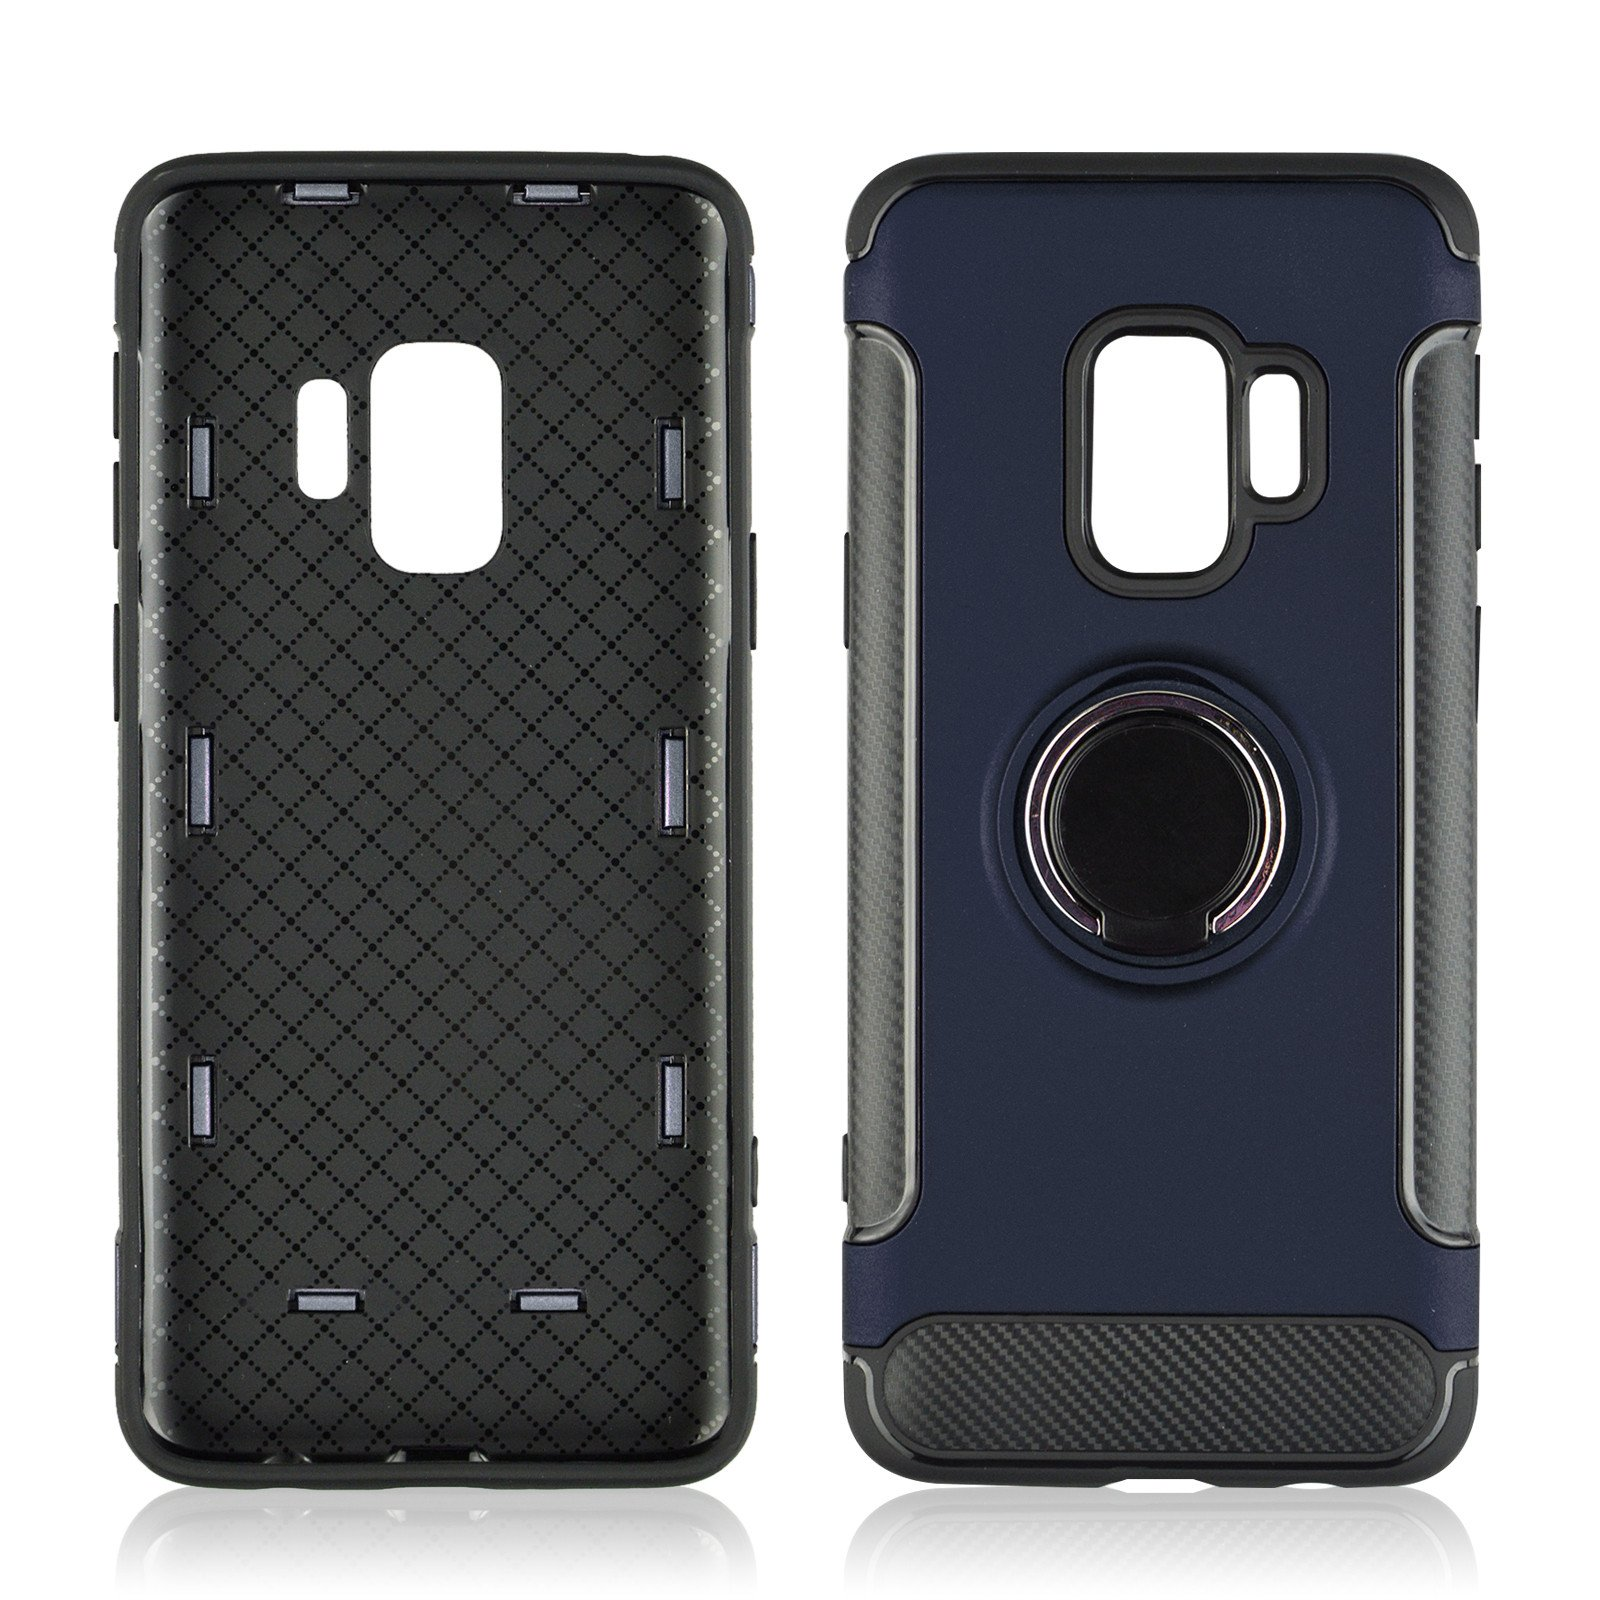 Hard Shockproof 360 Rotate Ring Holder Phone Case for Samsung Galaxy S9 Plus Phones